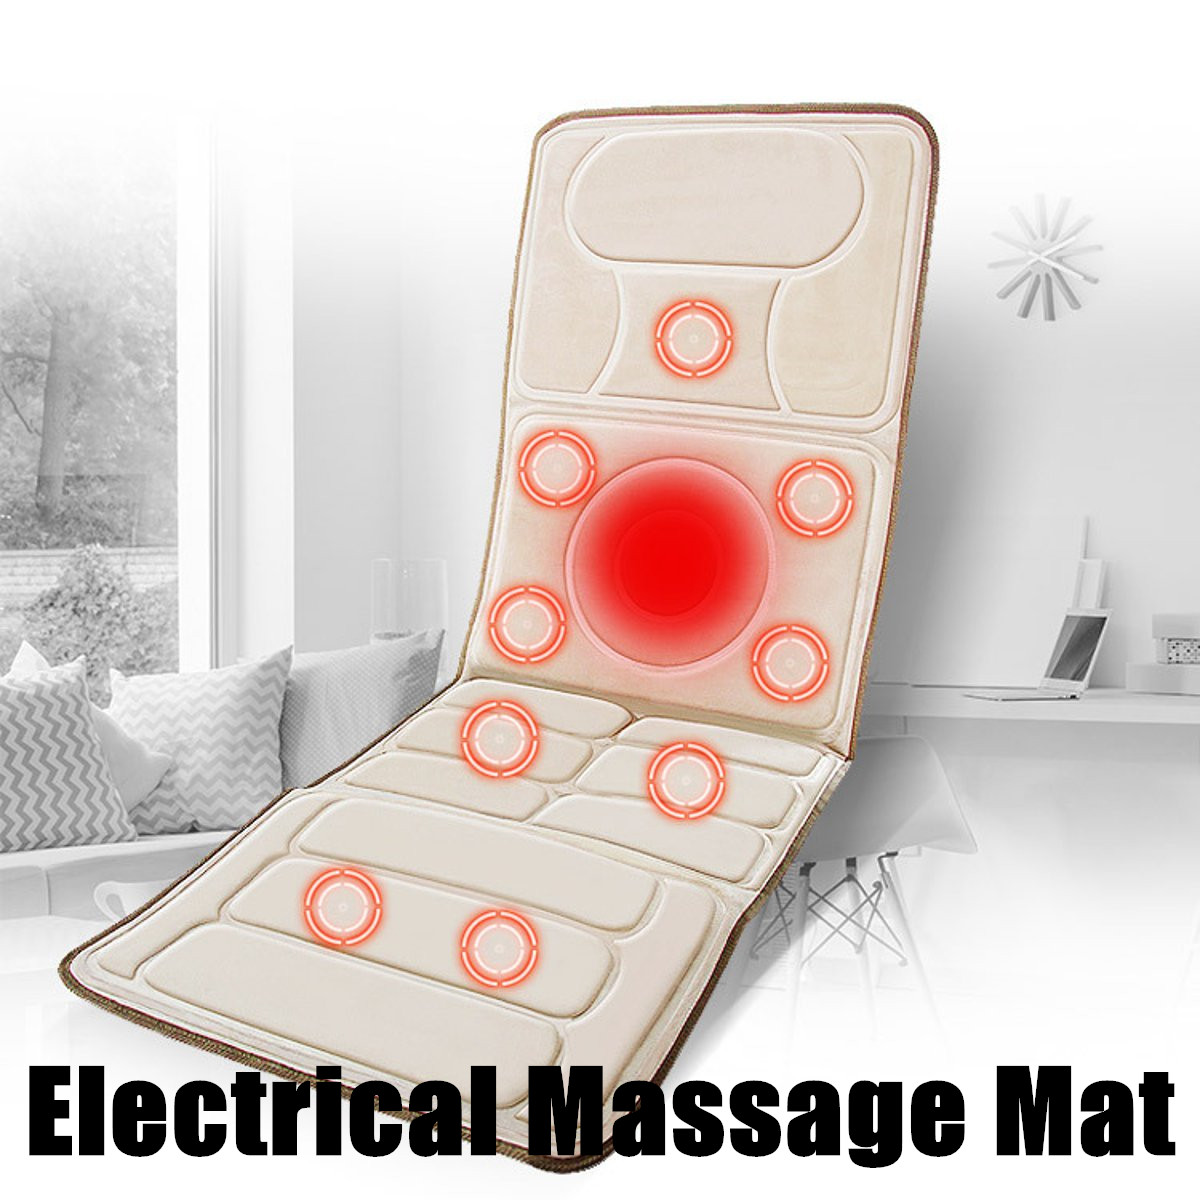 Electric Heat Infrared Massager Chair Cushion Vibrator Portable Home Car Body Neck Lumbar Waist Pain Relief Seat Pad Relax MatElectric Heat Infrared Massager Chair Cushion Vibrator Portable Home Car Body Neck Lumbar Waist Pain Relief Seat Pad Relax Mat